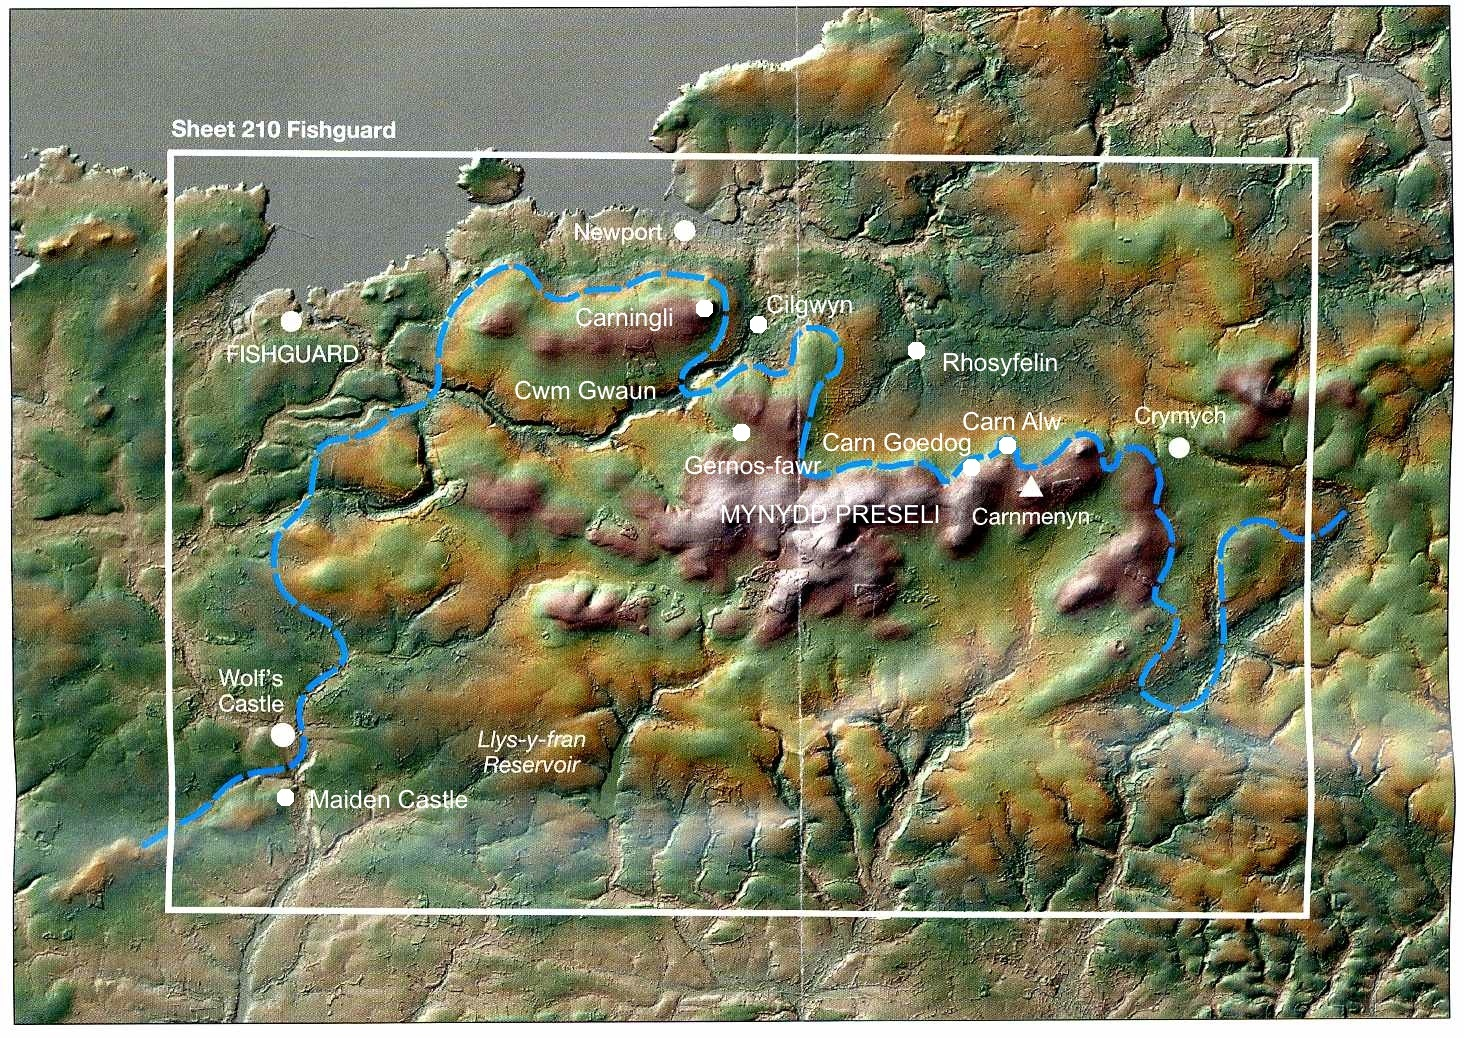 Stonehenge and the Ice Age: Relief Map of the main